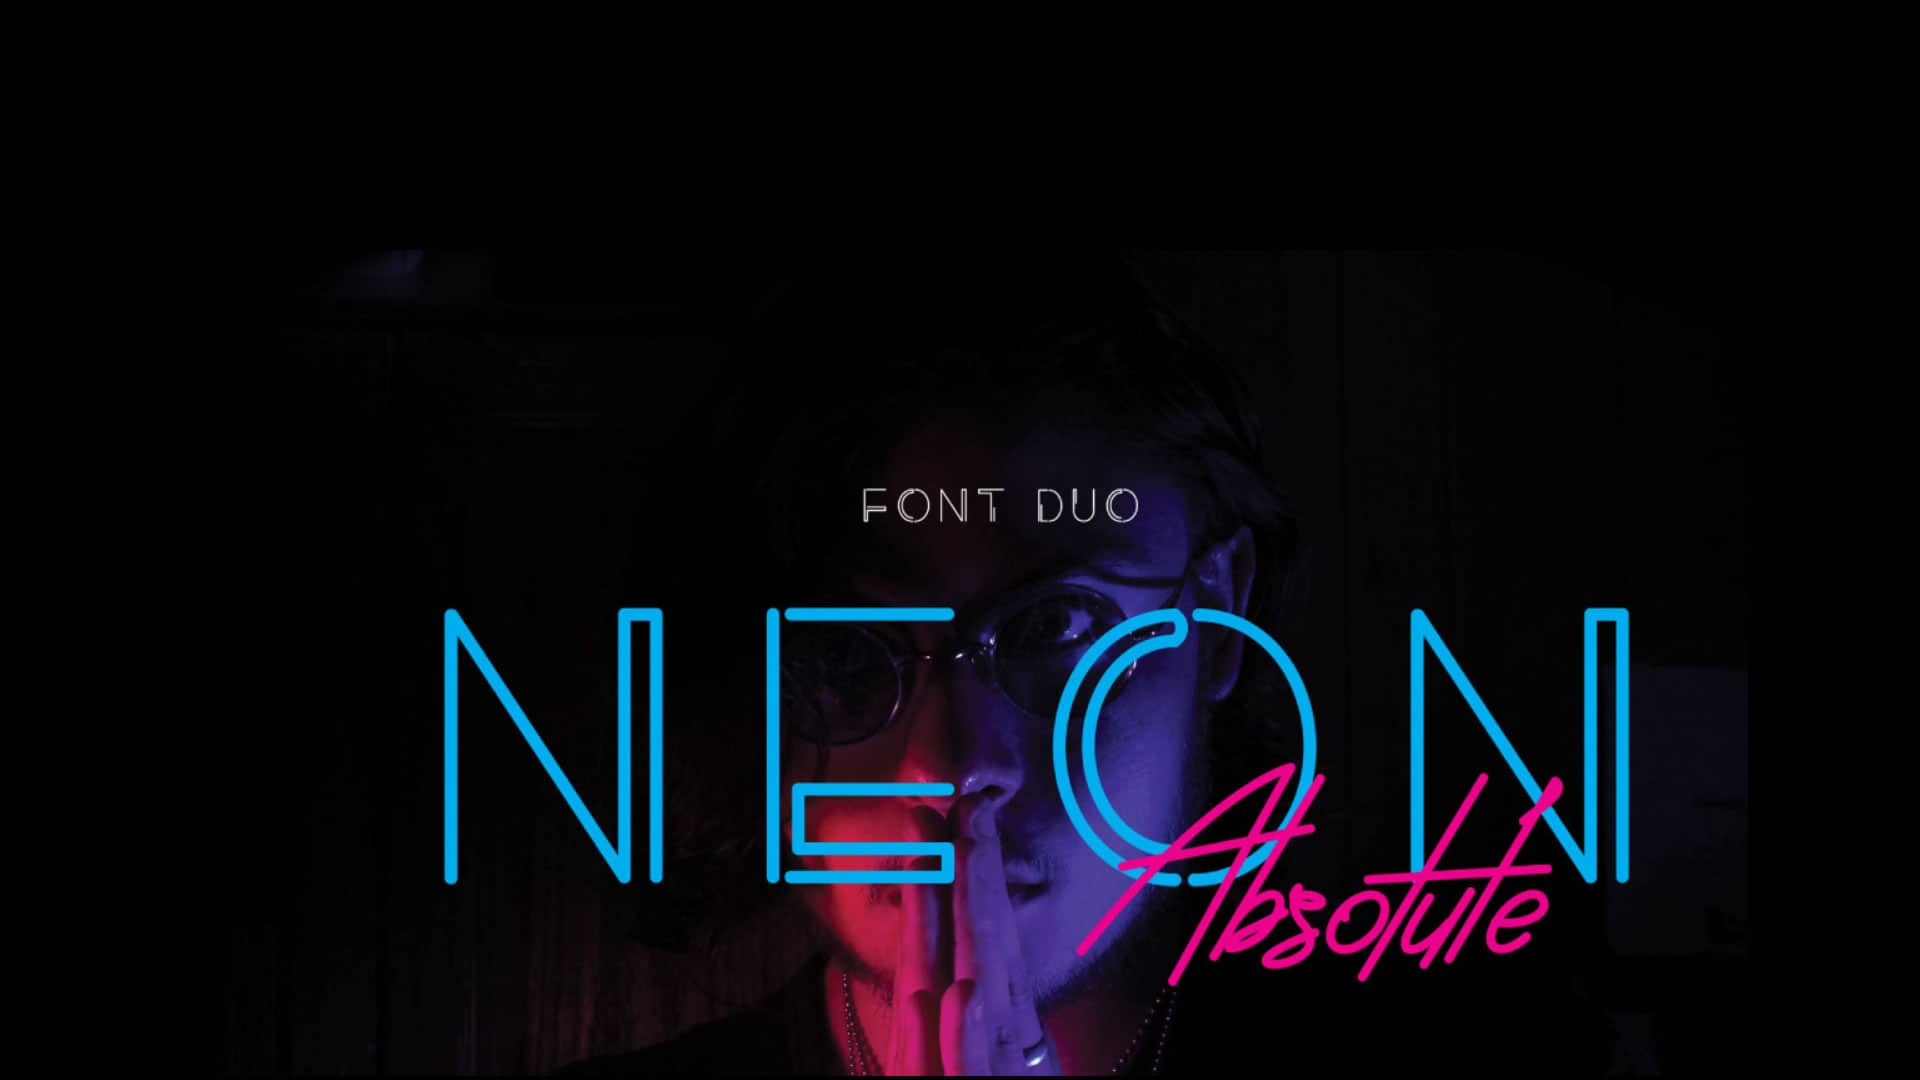 Neon Absolute Fonts